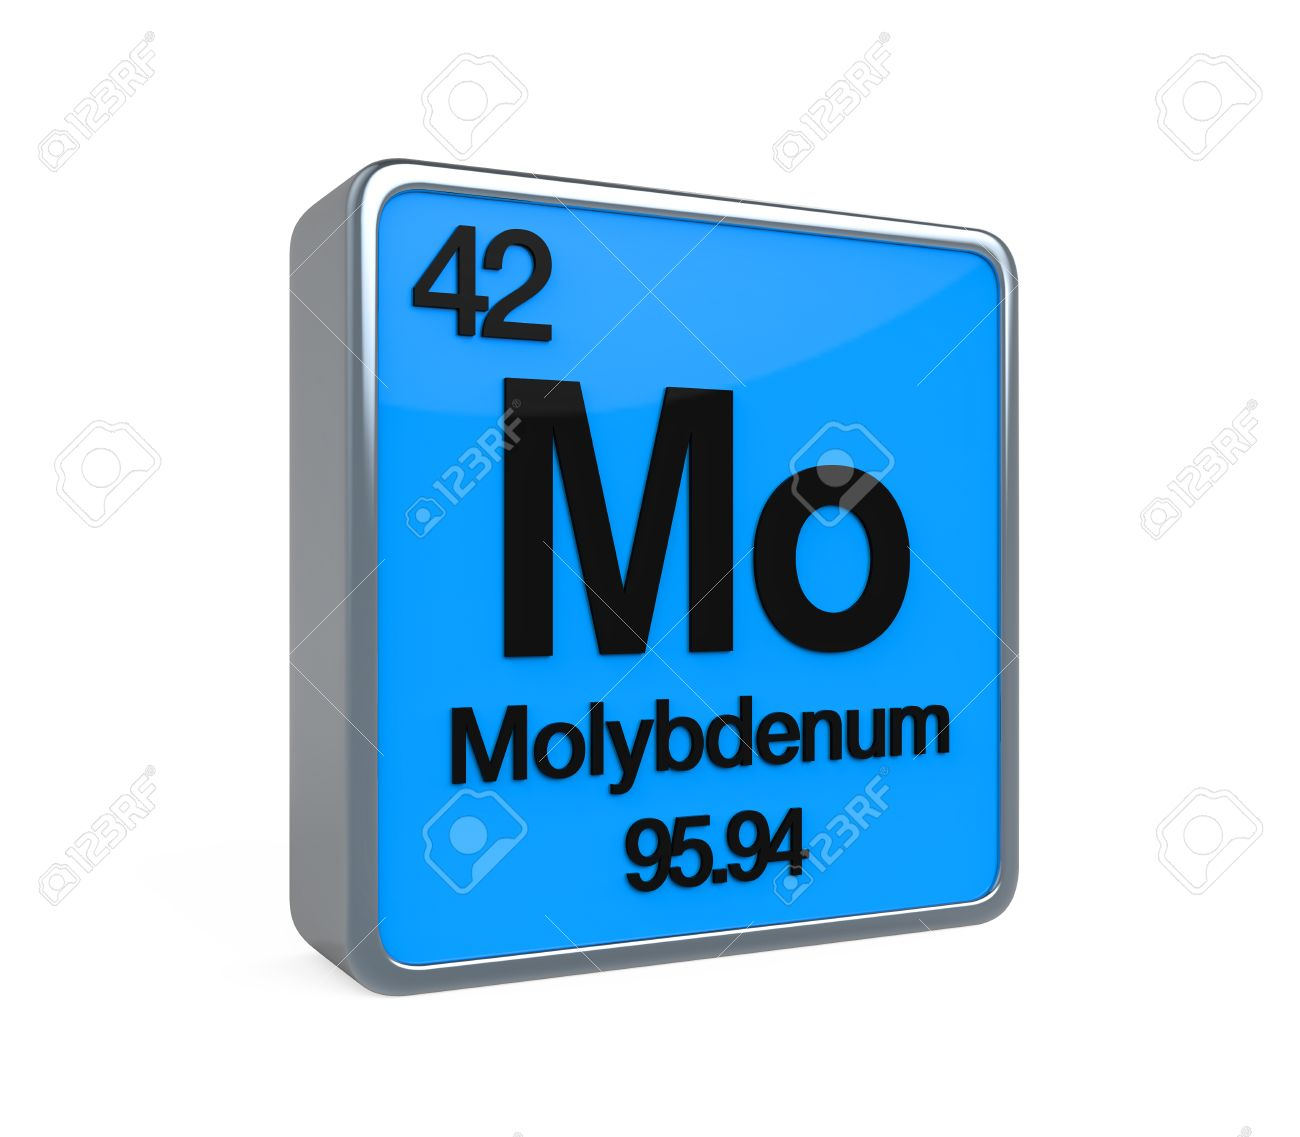 Periodic table molybdenum choice image periodic table images aluminum element periodic table images periodic table images periodic table molybdenum uses aviongoldcorp molybdenum element periodic gamestrikefo Image collections